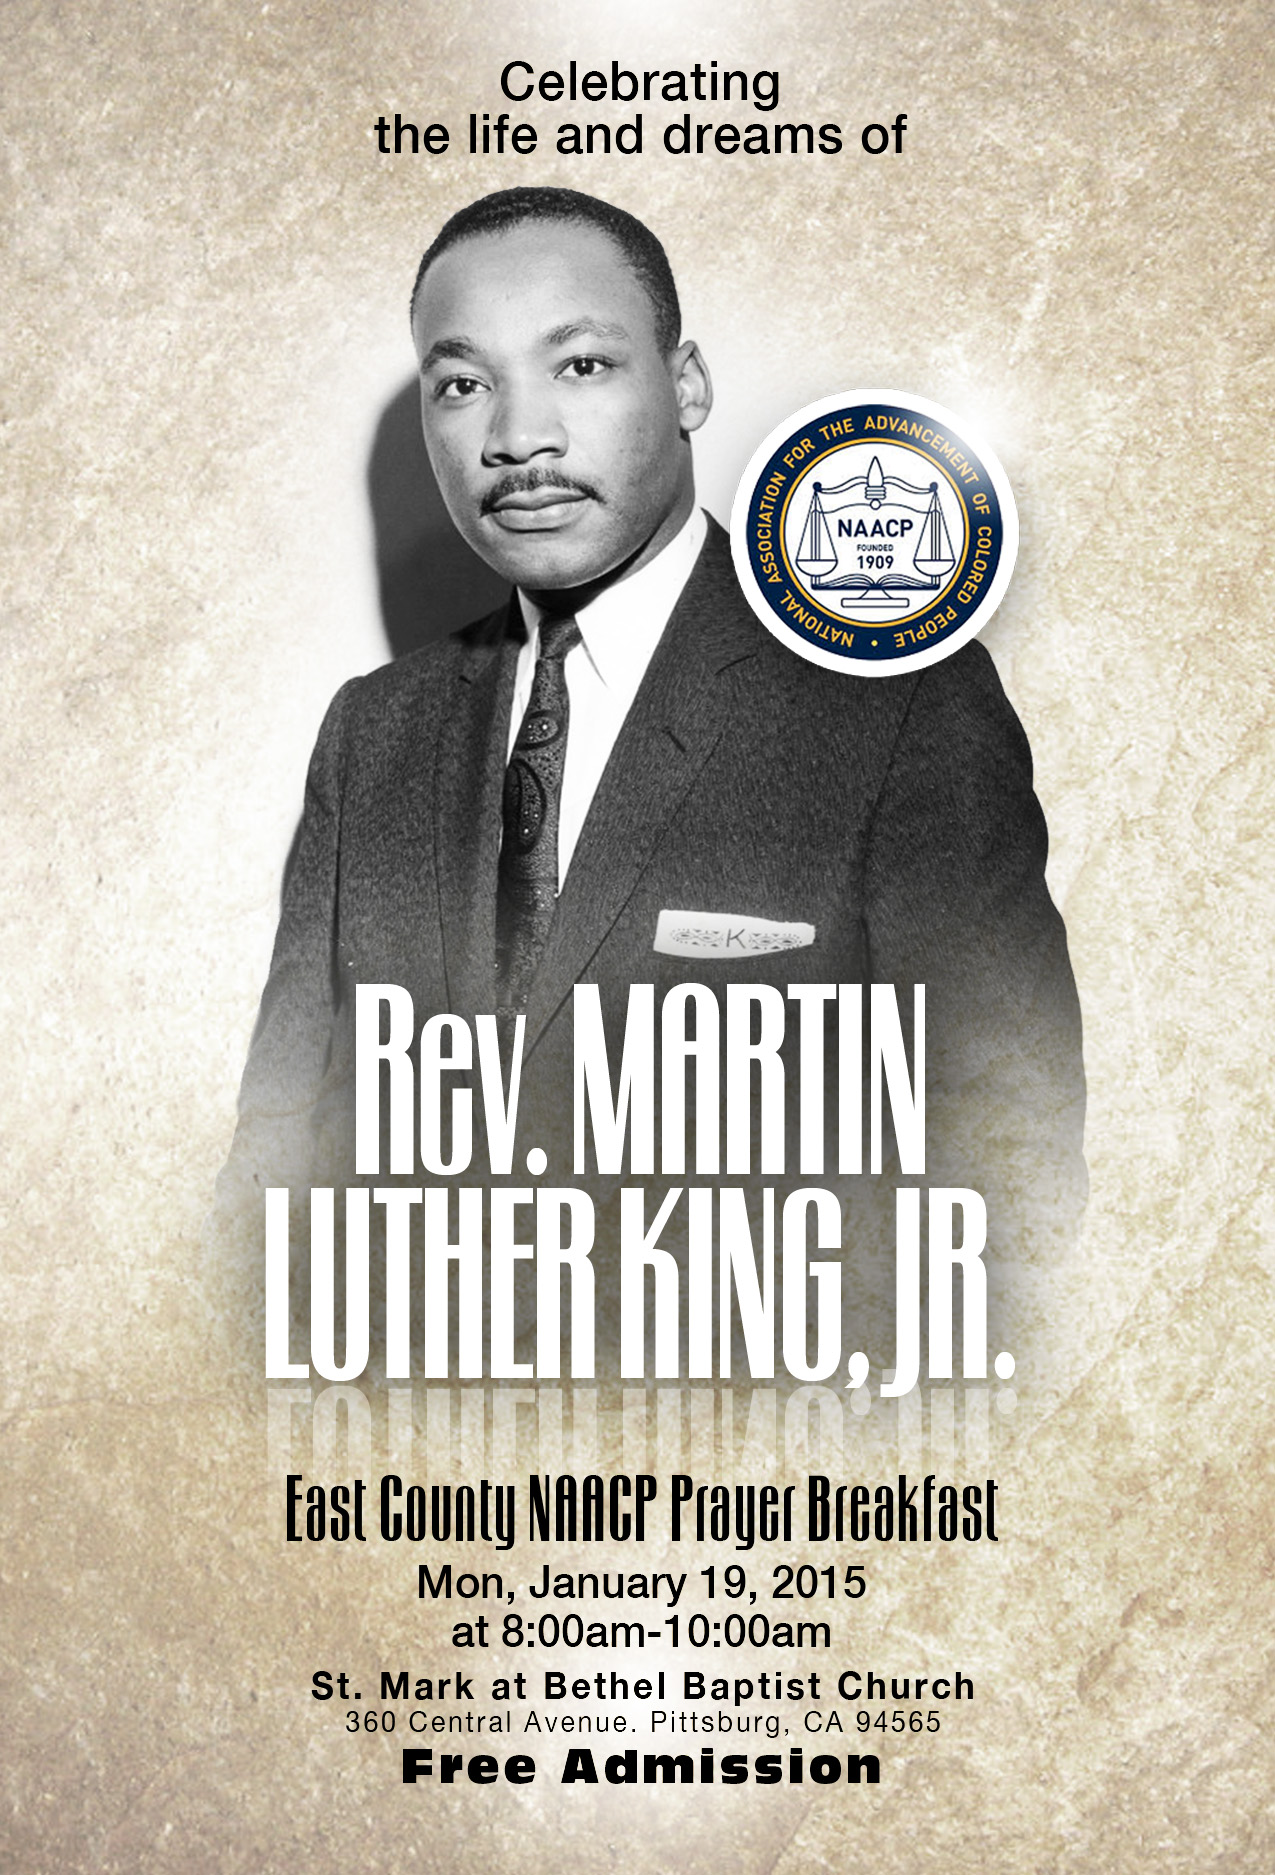 mlk photo essay Photo essay: 55th anniversary of march on washington kicks off initiative 1000  who: the martin luther king commemoration committee (mlkcc) consists of more than .